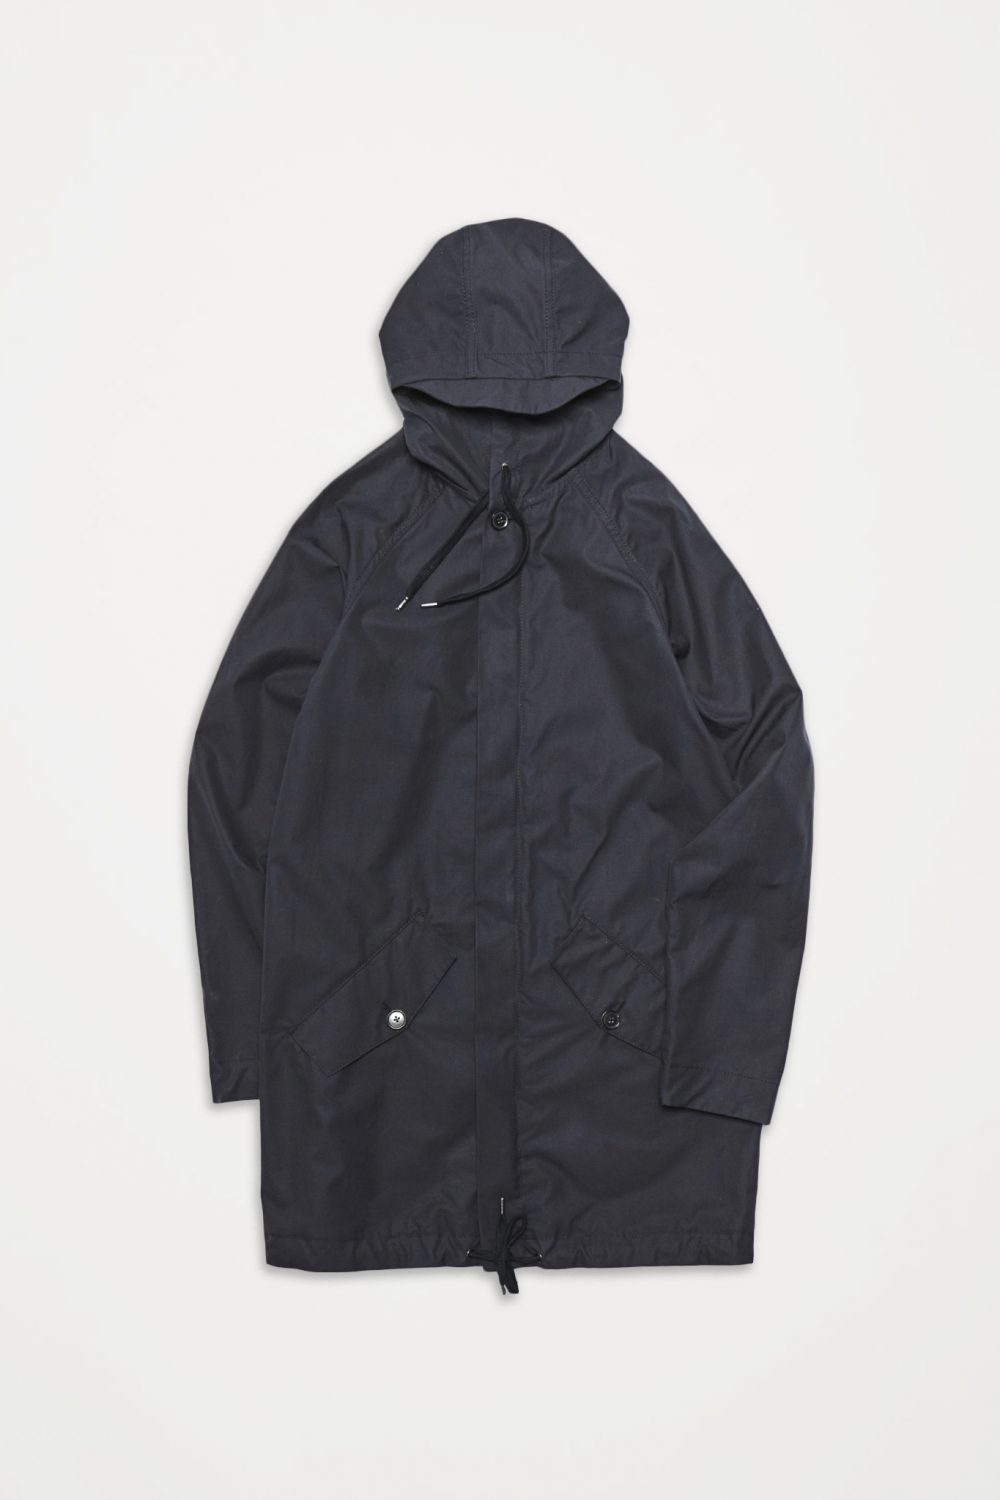 a kind of guise permanents parka